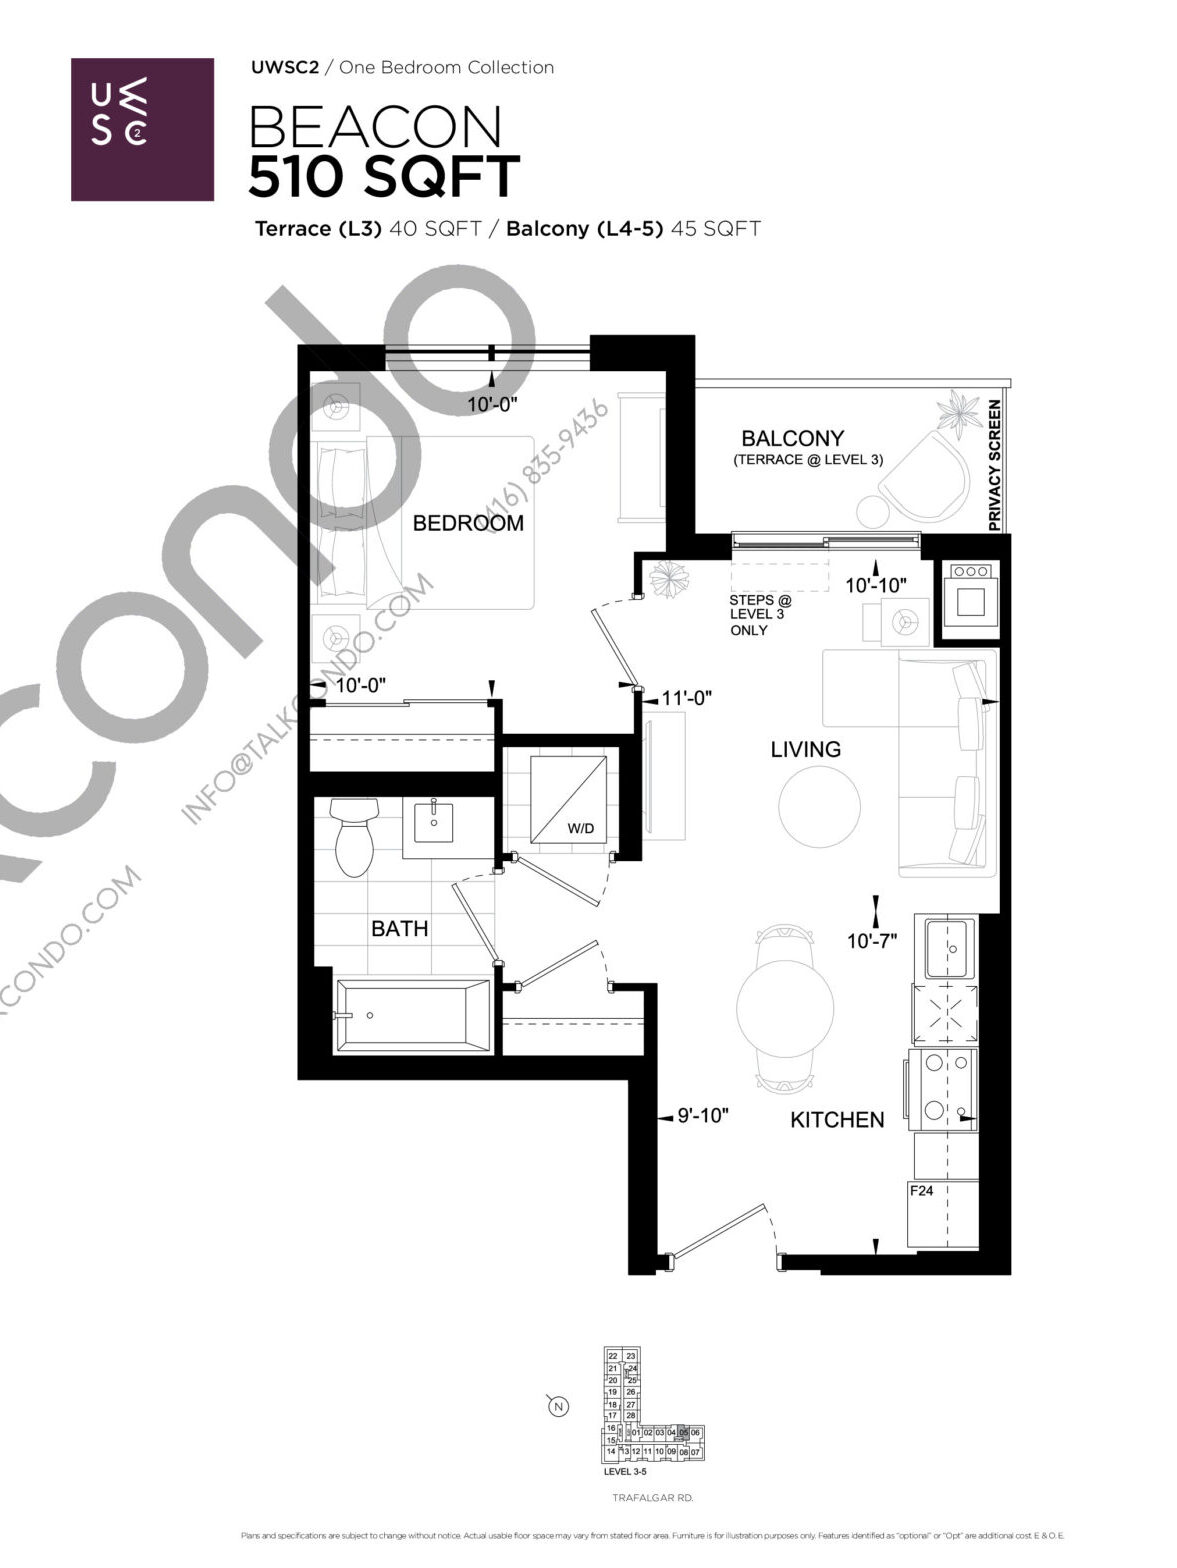 Beacon Floor Plan at Upper West Side Condos 2 - 510 sq.ft